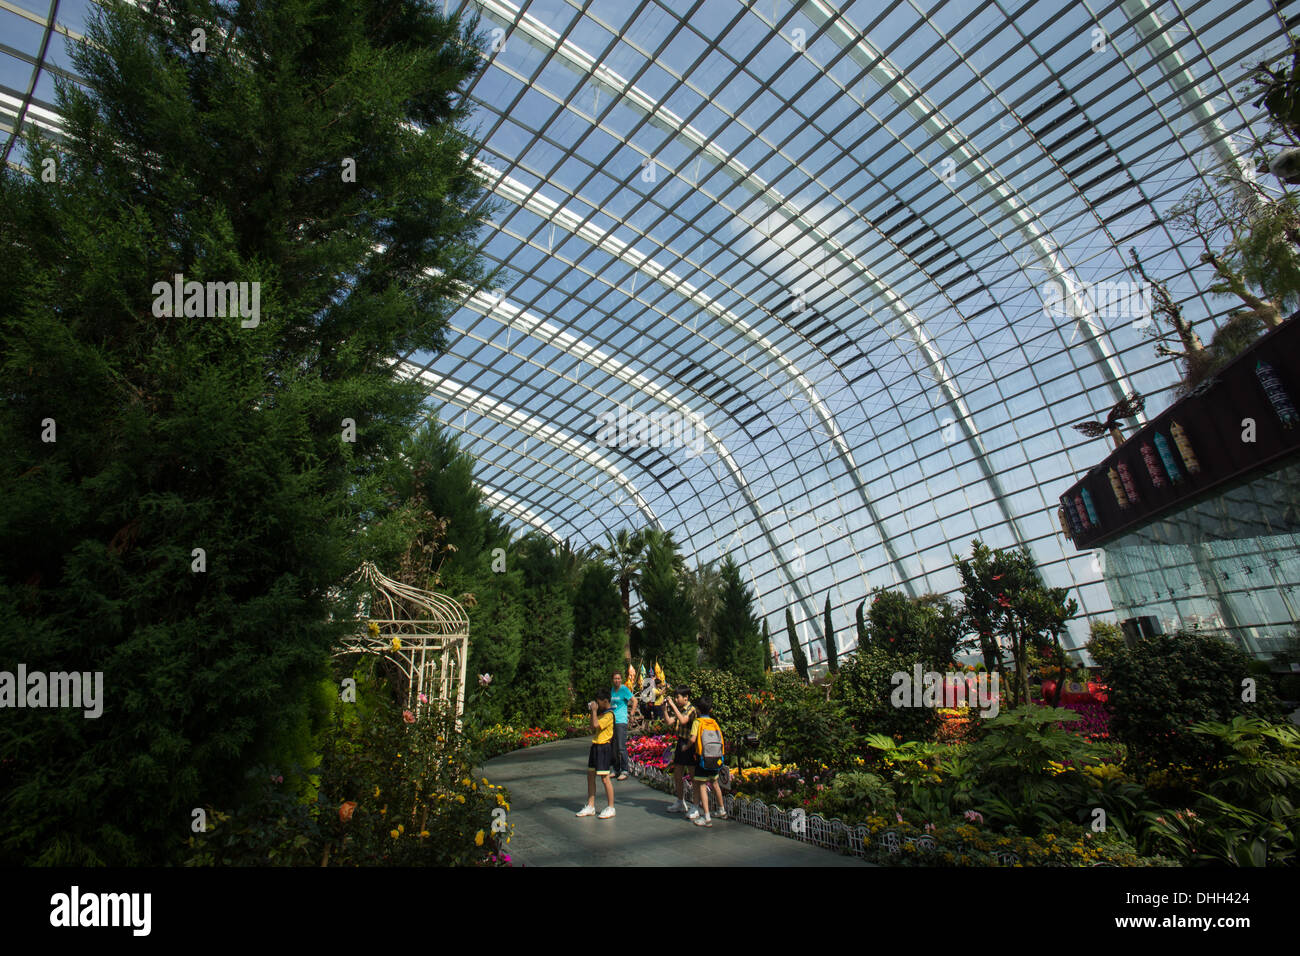 The Flower Dome at Gardens by the Bay is an artificially created realm of perpetual spring. - Stock Image